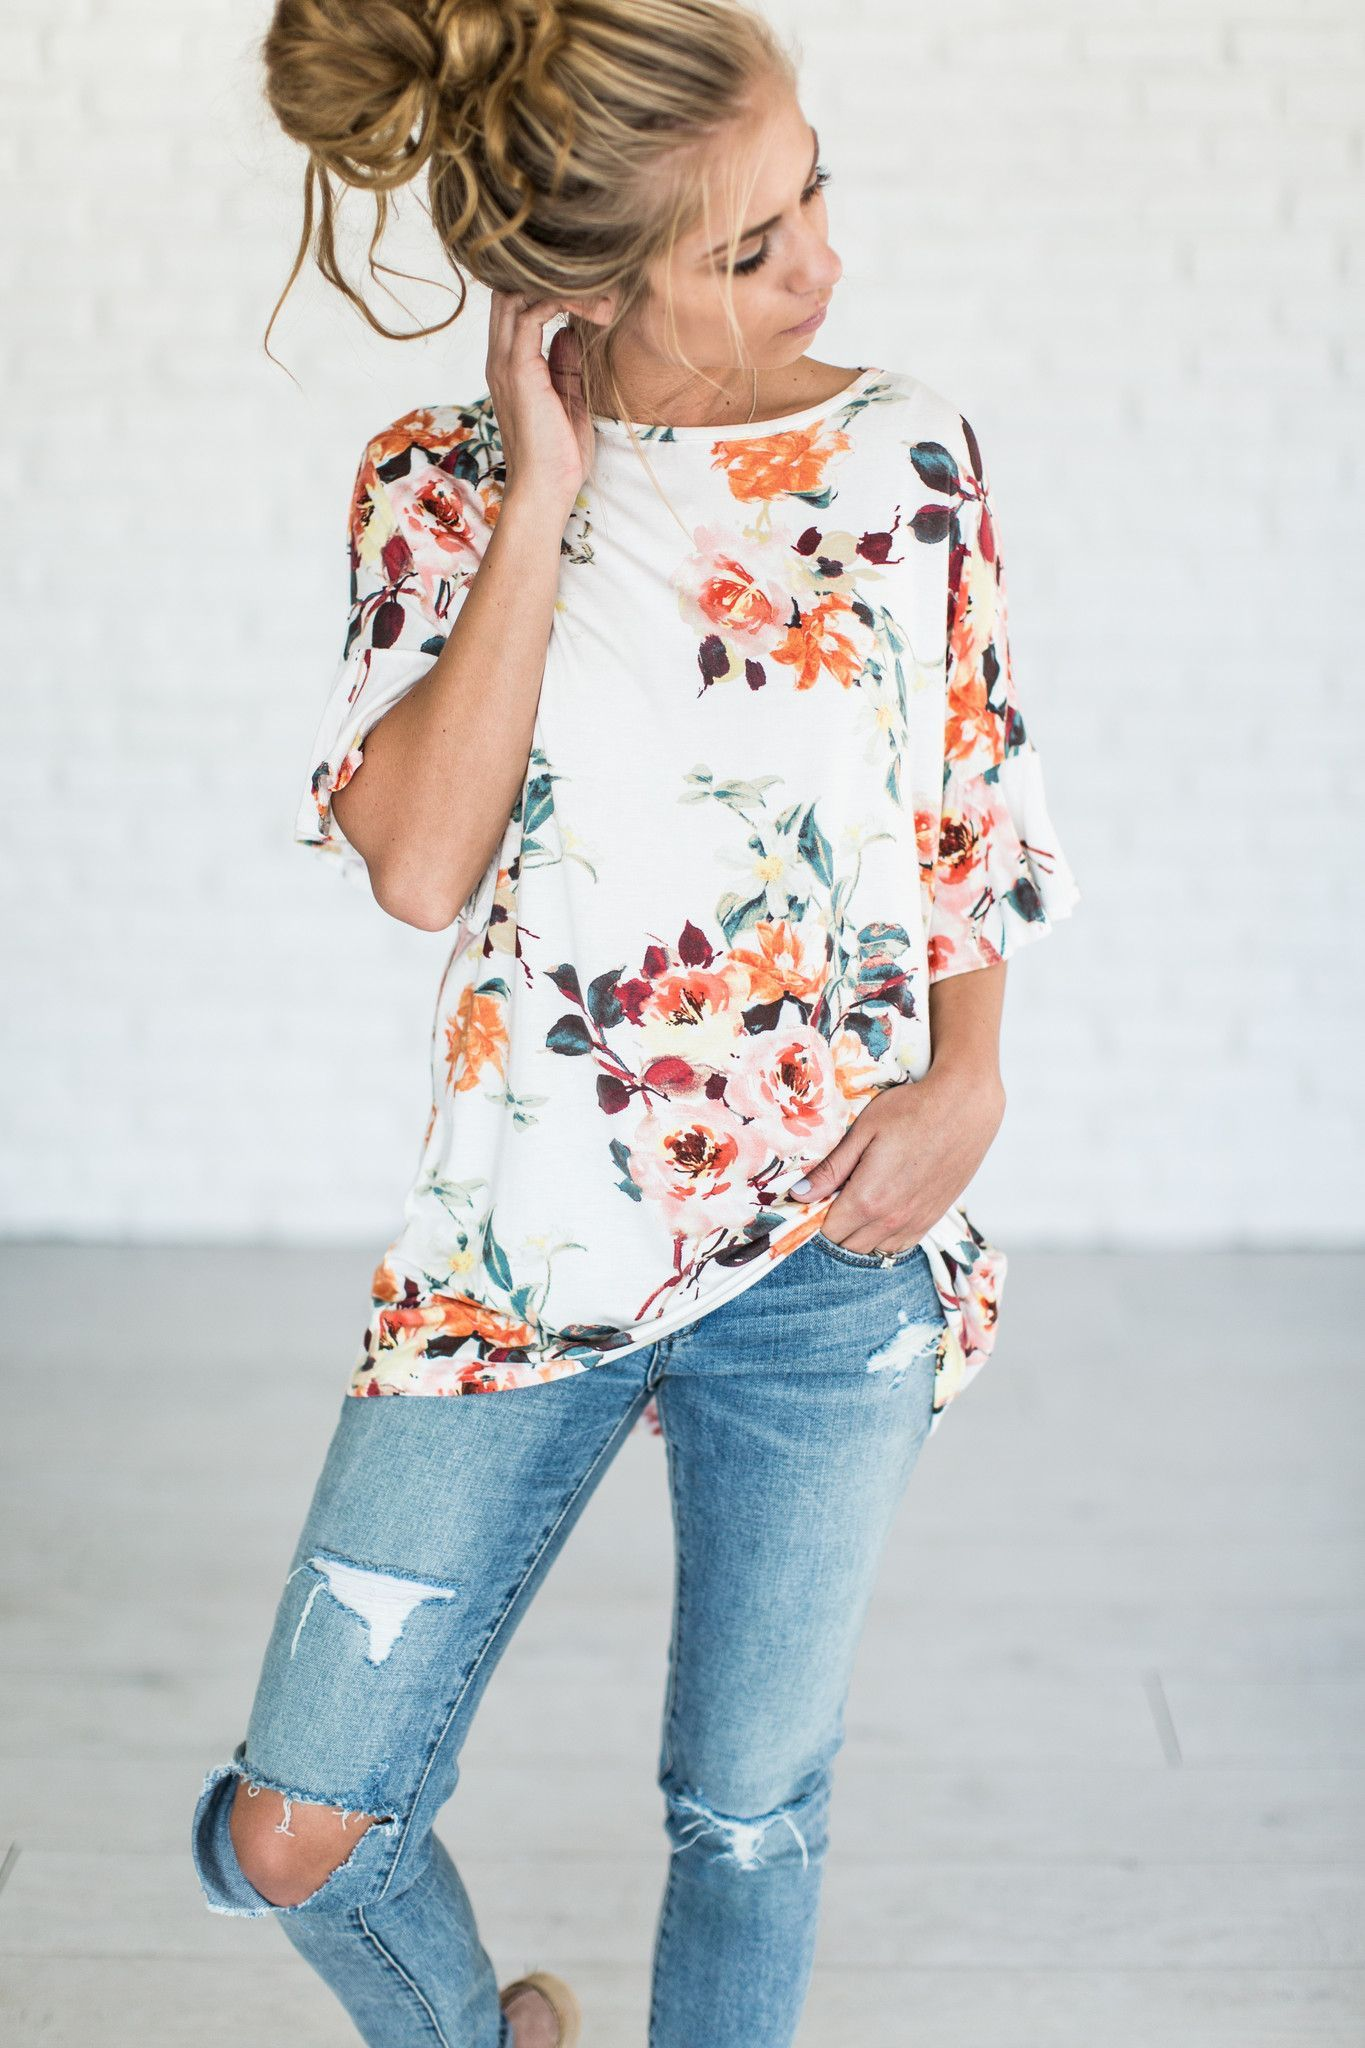 57b6574e0db8 Alexia Floral Top - Off White  ships 6 5 . Cool look for summer 2017 Fashion  ...